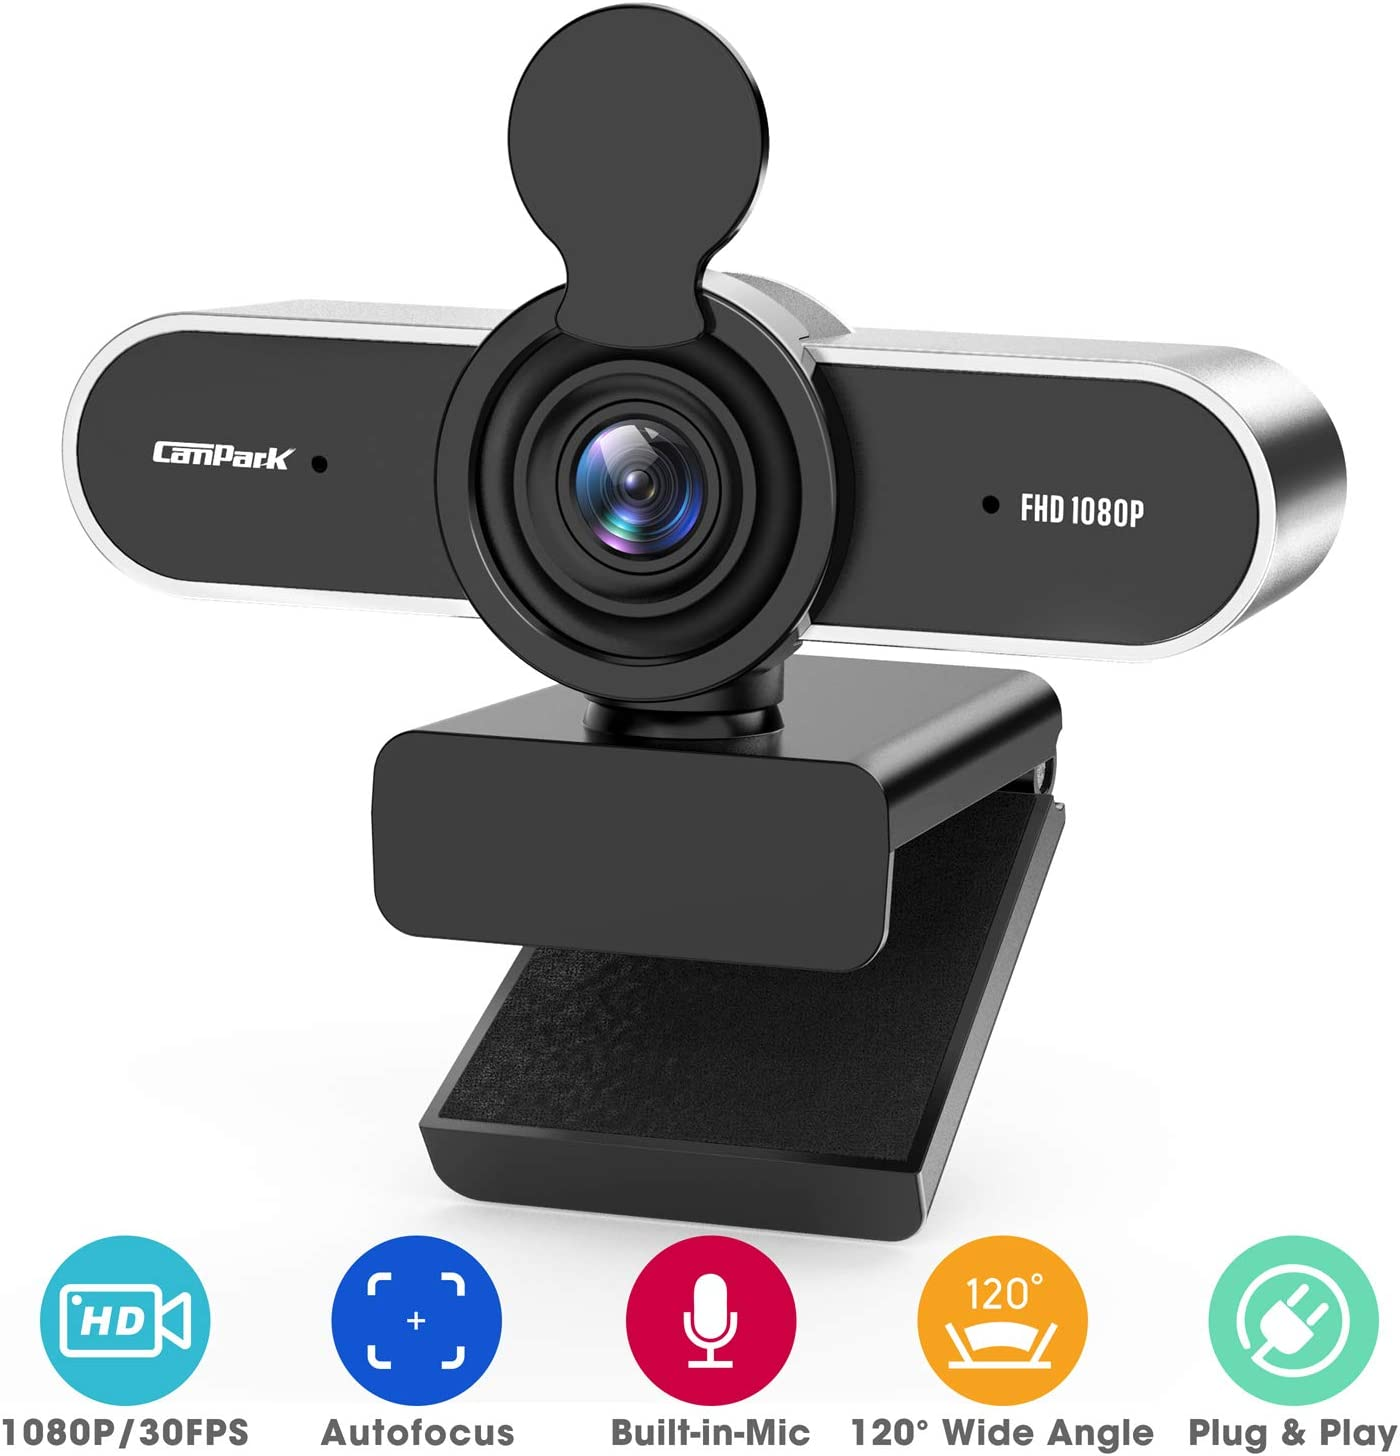 1080P Webcam with Microphone, Campark HD Webcam for Desktop or Laptop, USB Computer Camera with Privacy Cover and Low-Light Correction for Streaming, Video Calling, Conference, Plug and Play